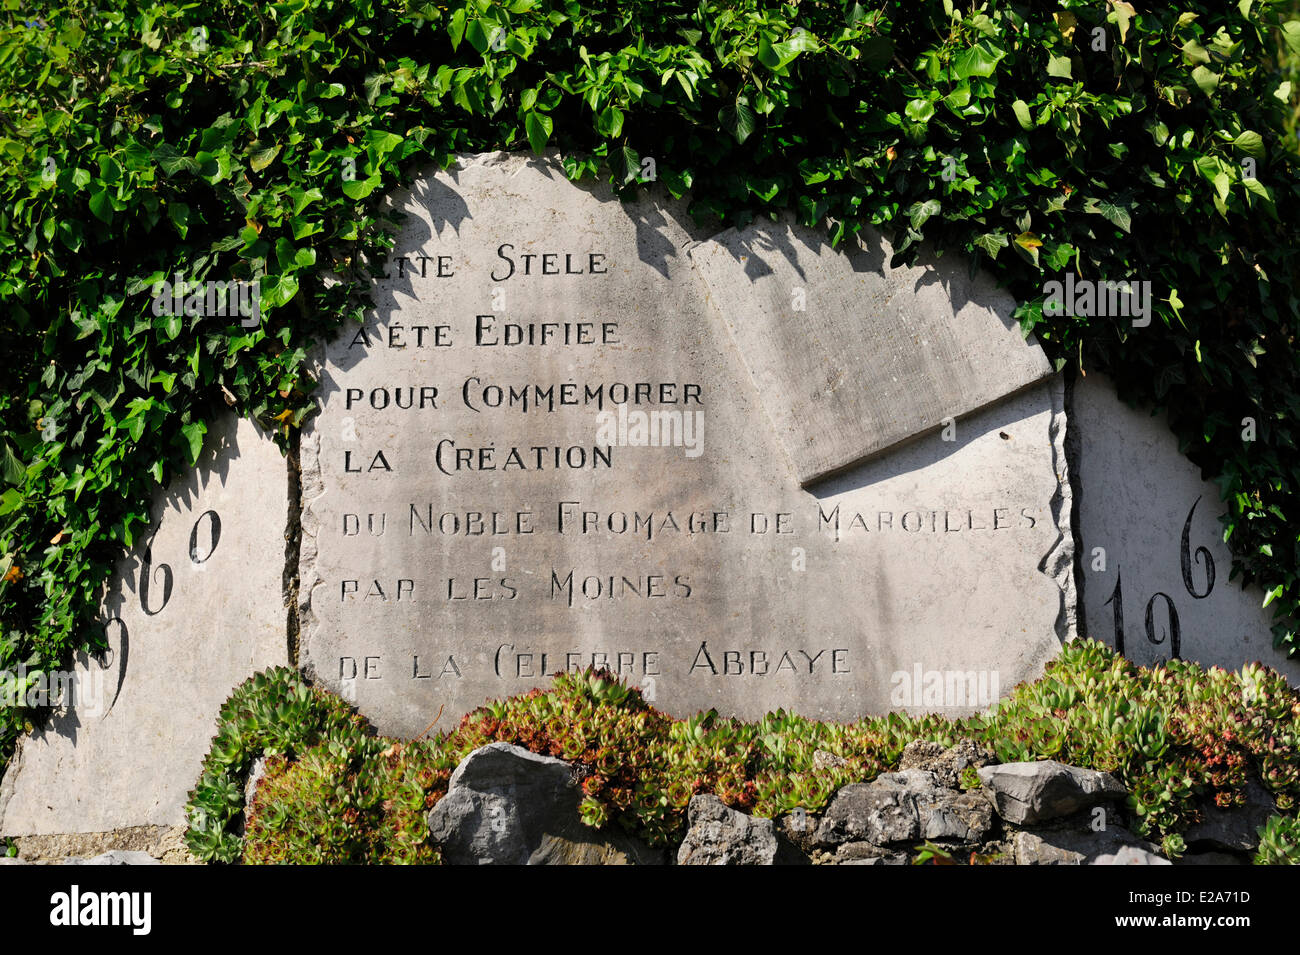 France, Nord, Maroilles, memorial stone to the creation of Maroilles Cheese by the Abbey monks - Stock Image